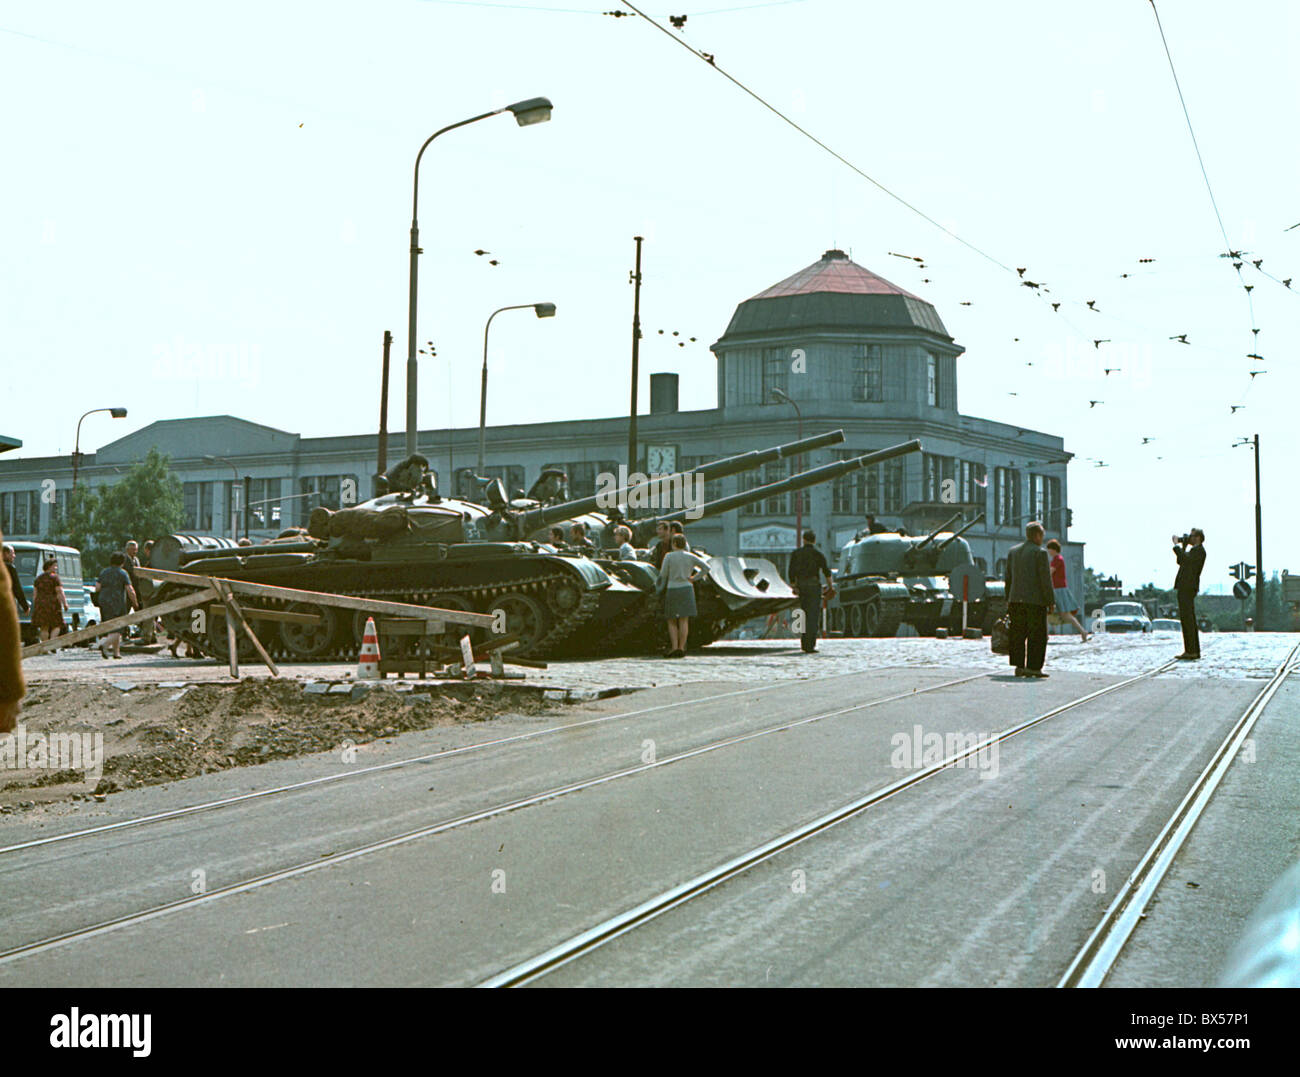 Troops of the Soviet Union and its Warsaw Pact allies invaded Czechoslovakia on August 21 1968  to halt political - Stock Image